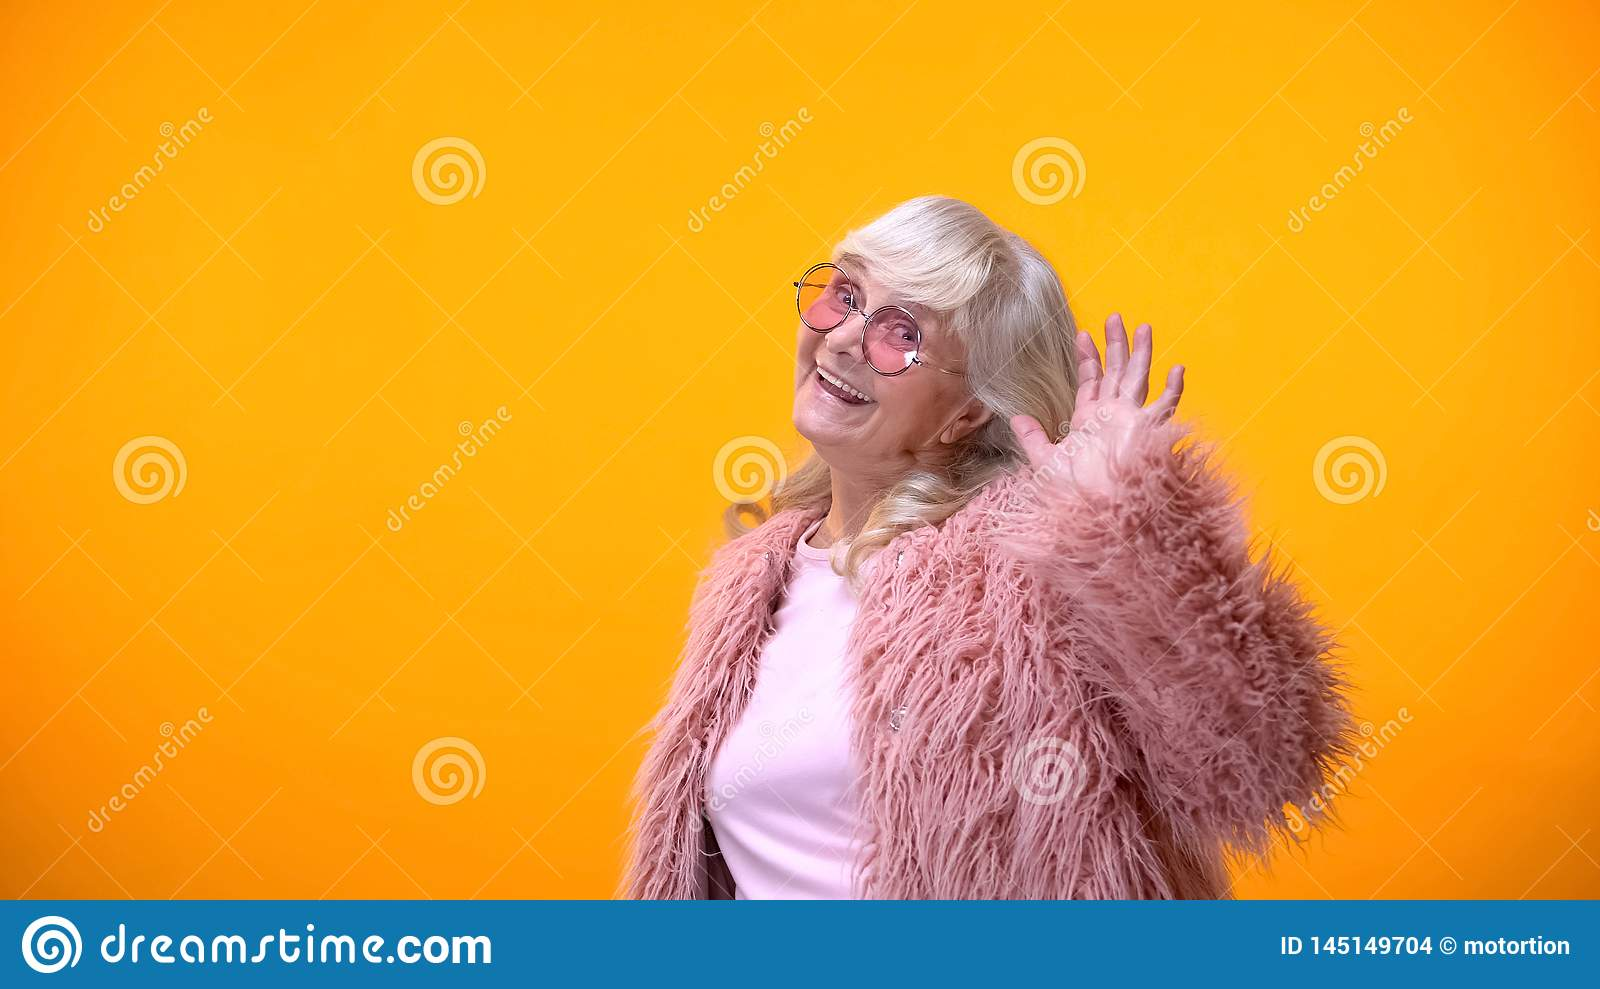 Childish elderly woman in pink coat and round sunglasses smiling into camera